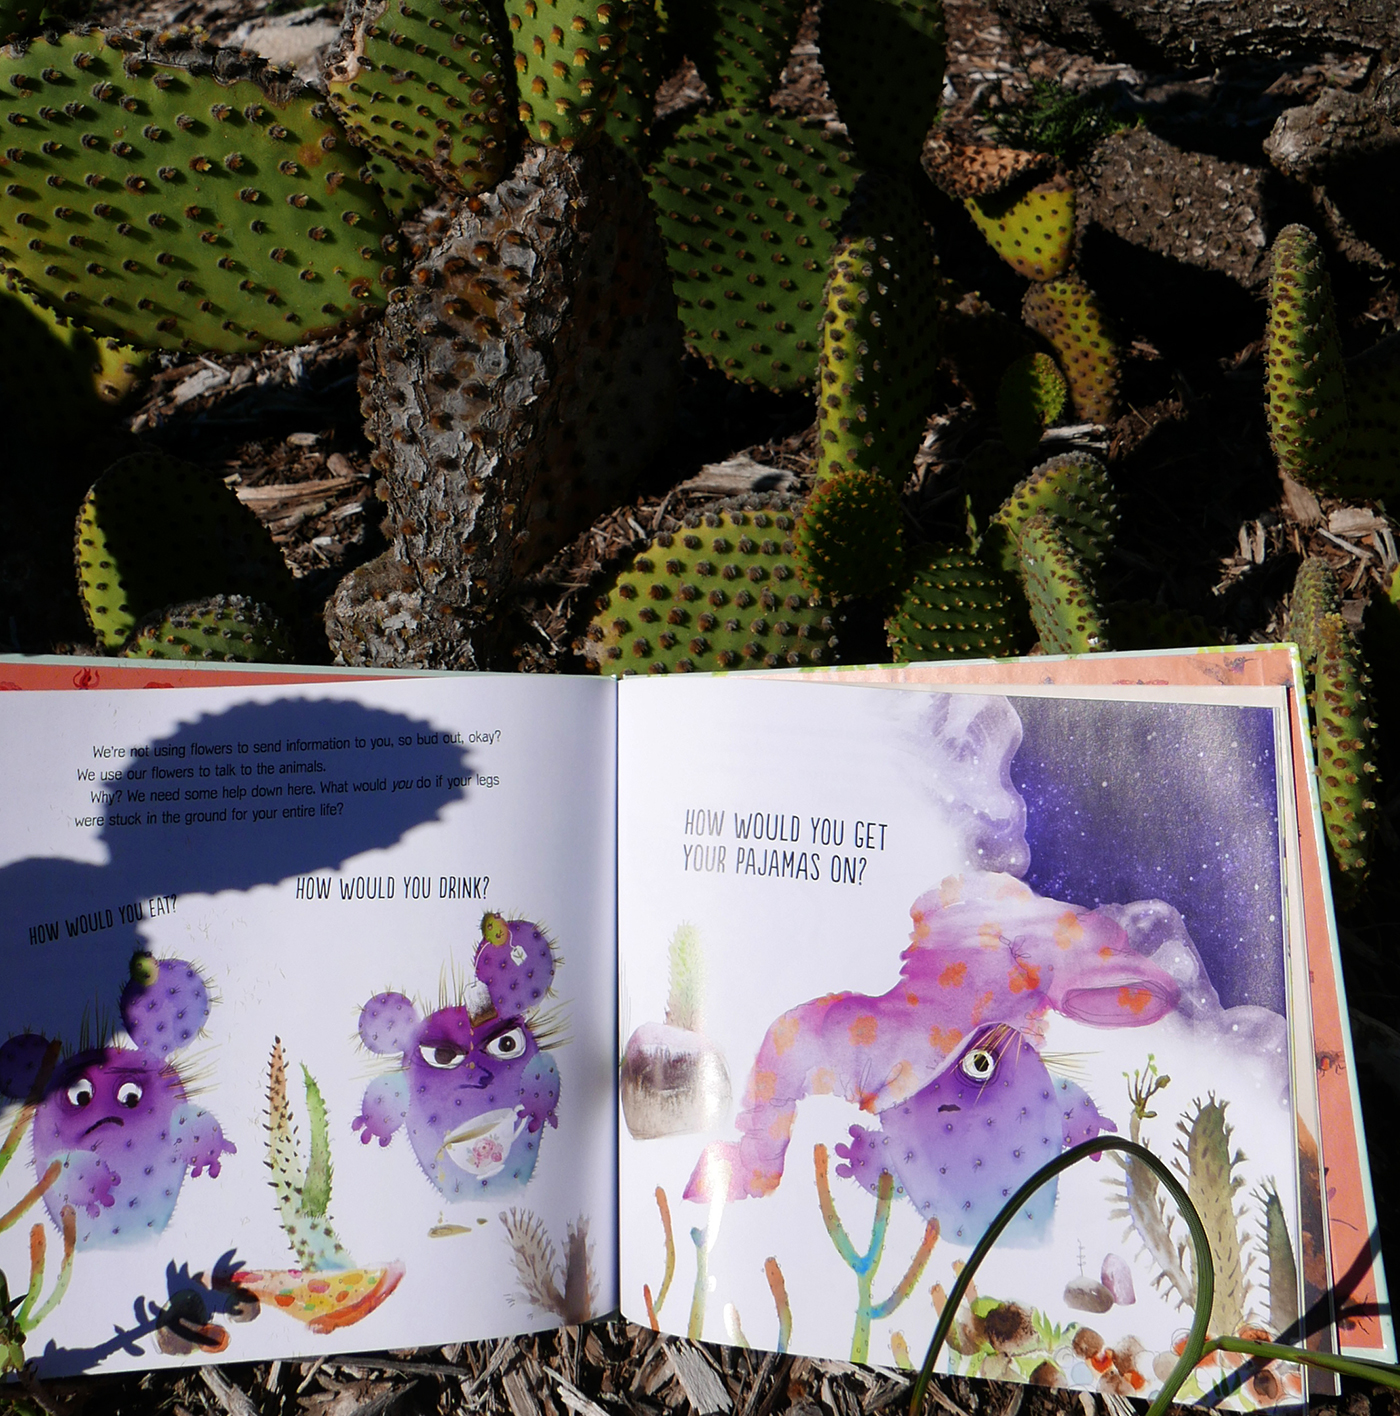 Flower Talk book by Masha D'yans in succulents